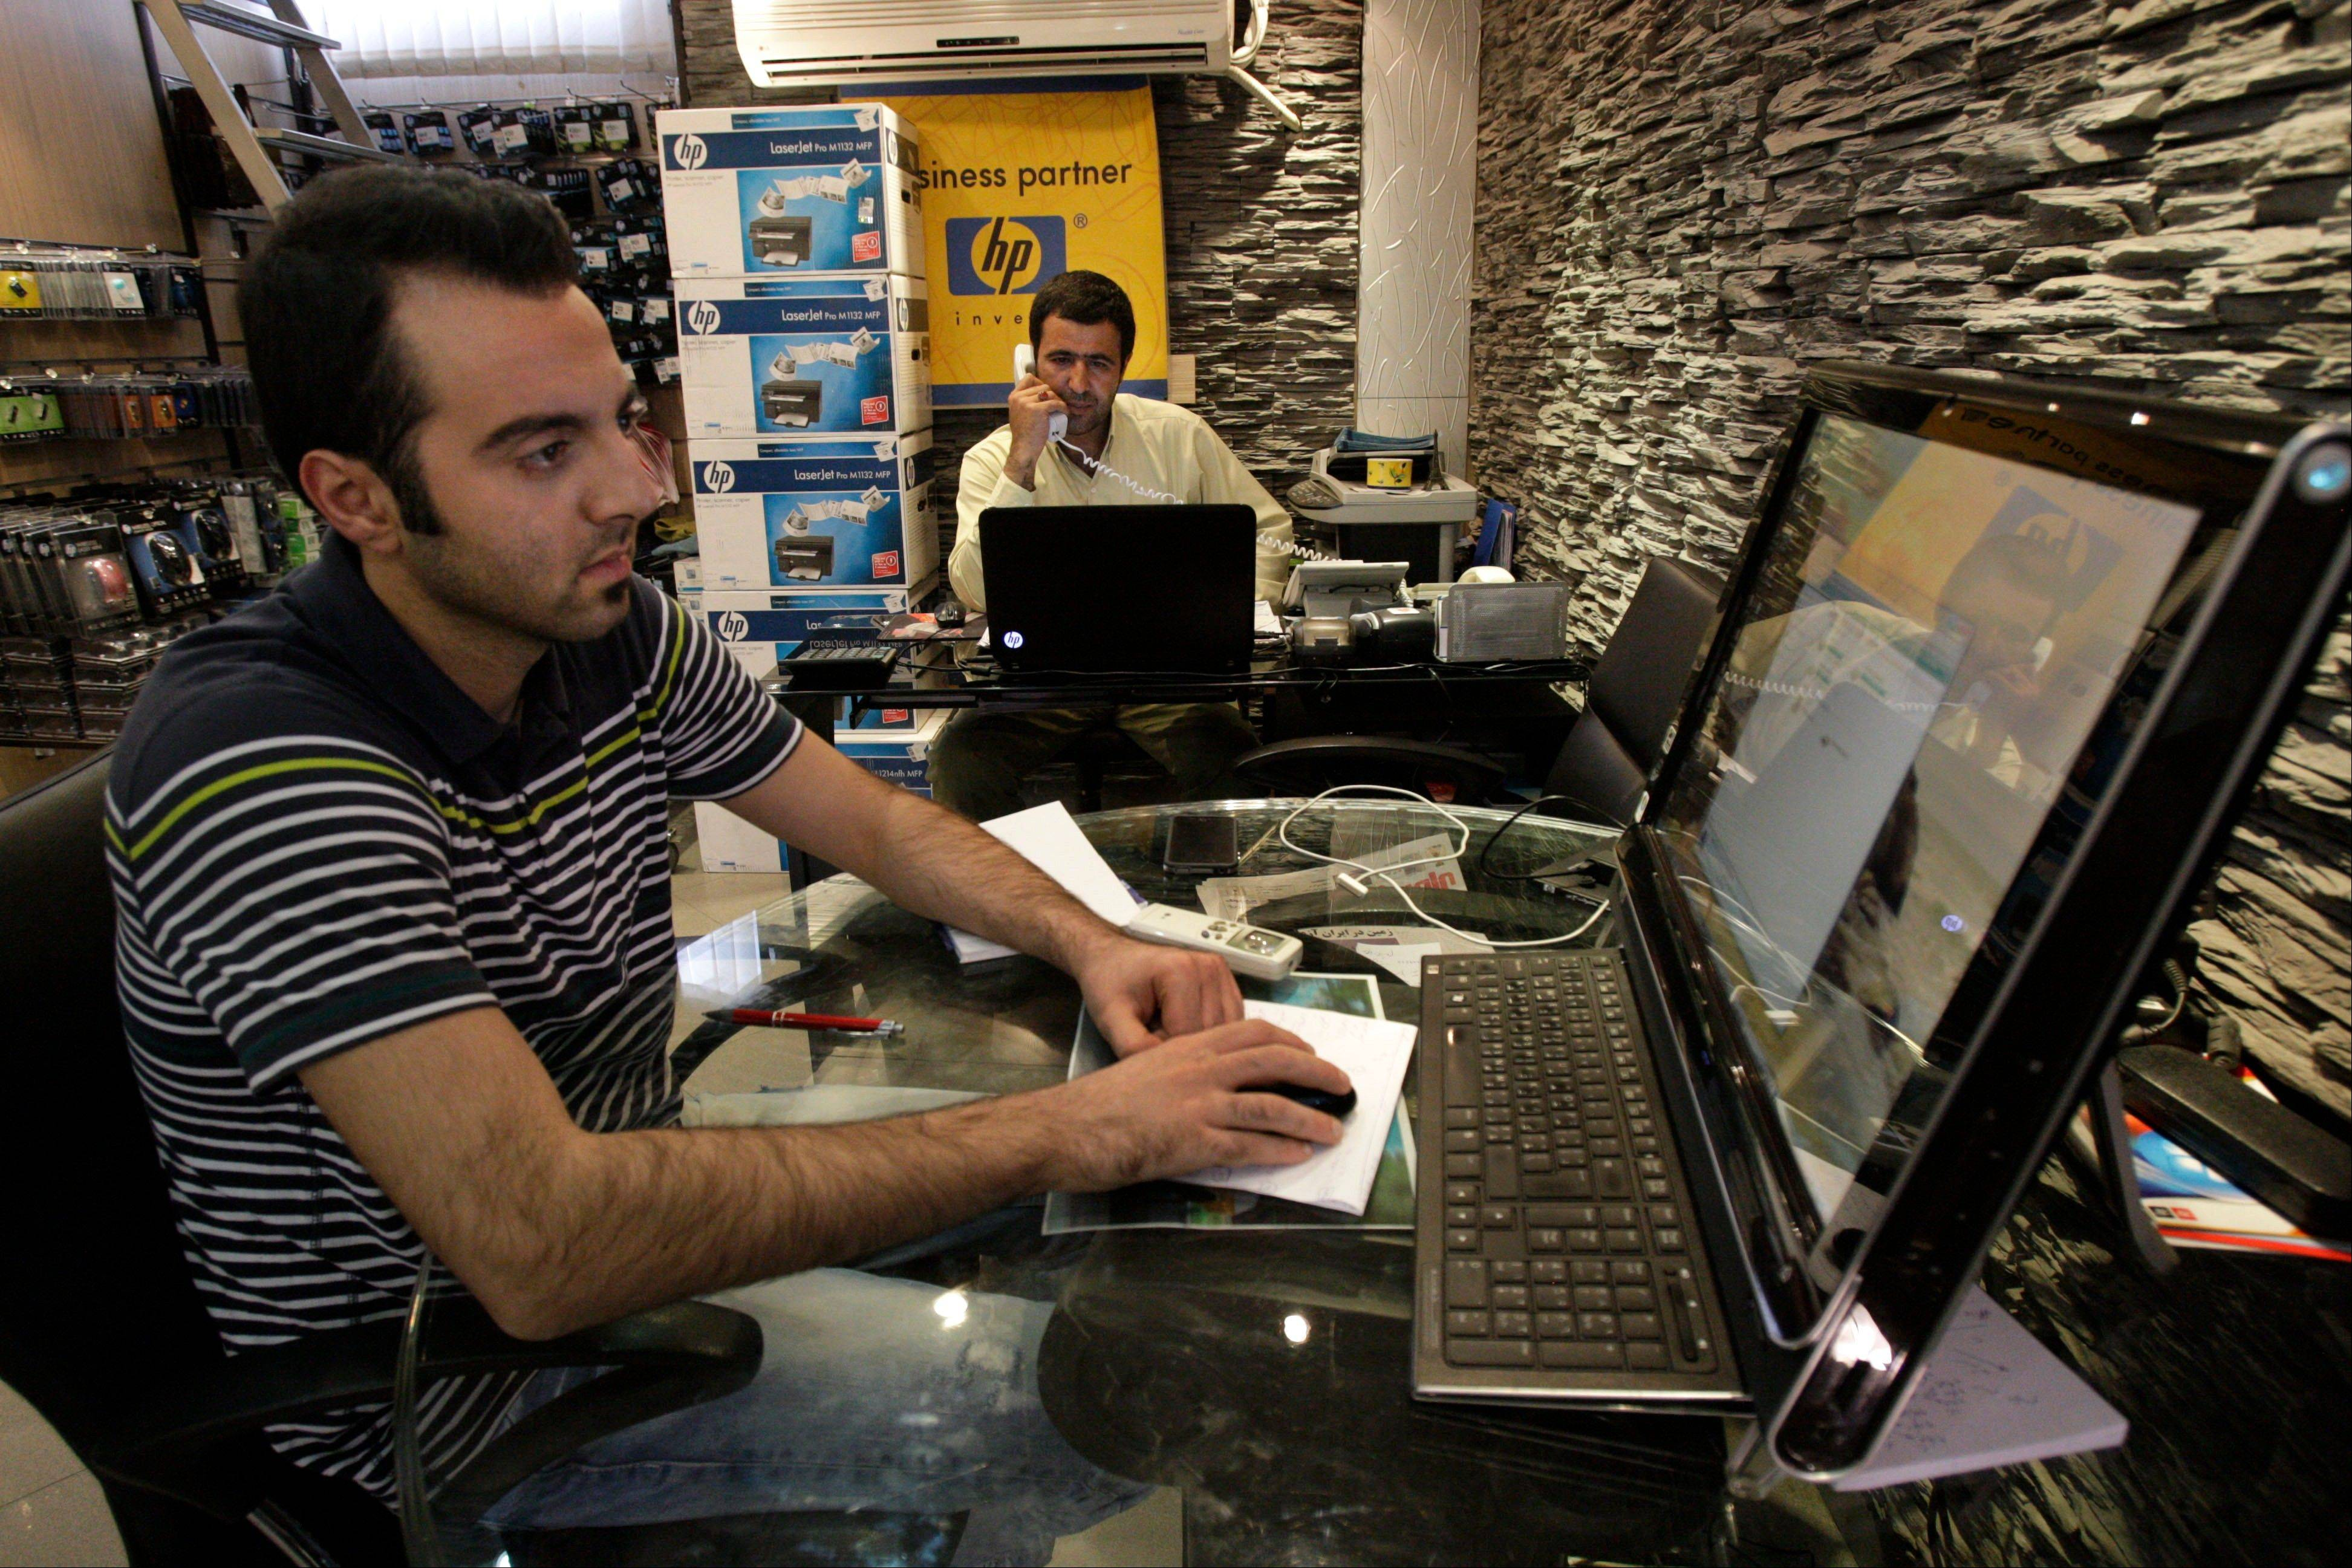 Associated Press/Sept. 8, 2012Iranian shopkeeper Mohammad Mousavi, background, a Hewlett-Packard, HP, products seller, speaks on the phone, as Vedad Rashadi, works on a computer, in their store, in an electronics market in northern Tehran, Iran.